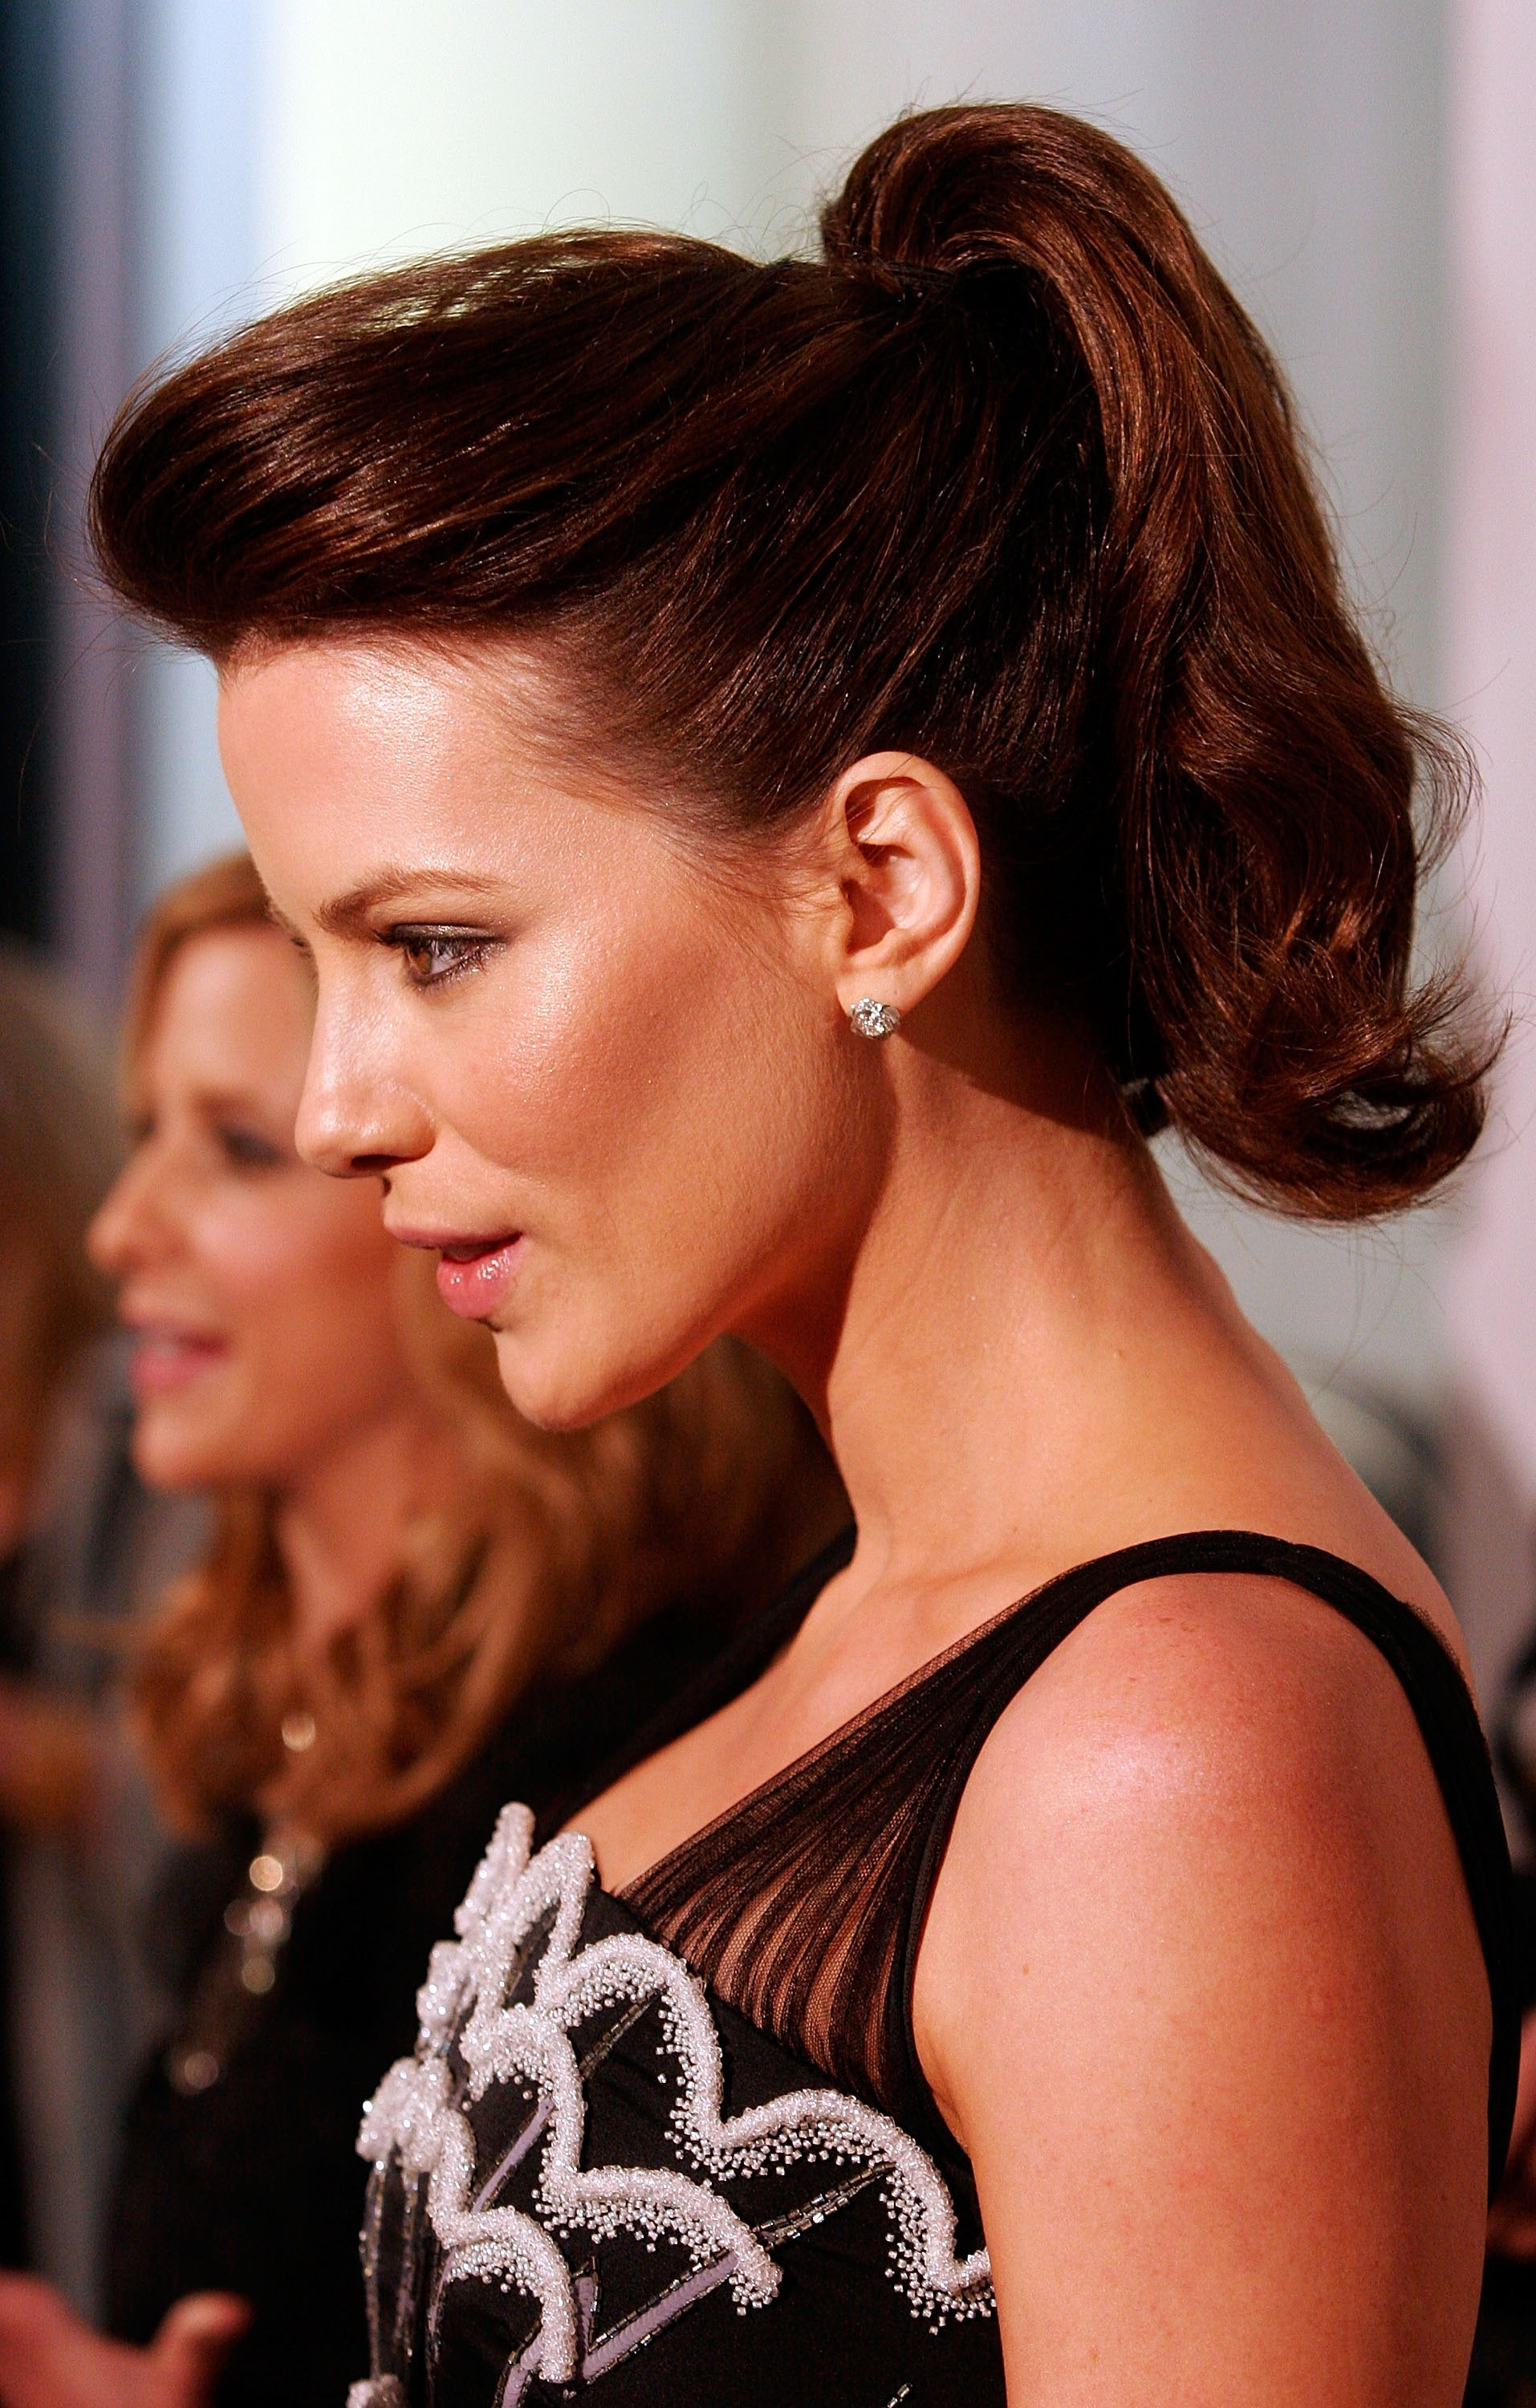 Kate Beckinsale Debuts Short New Hairdo Inspiring Us To Head To The Salon Photo